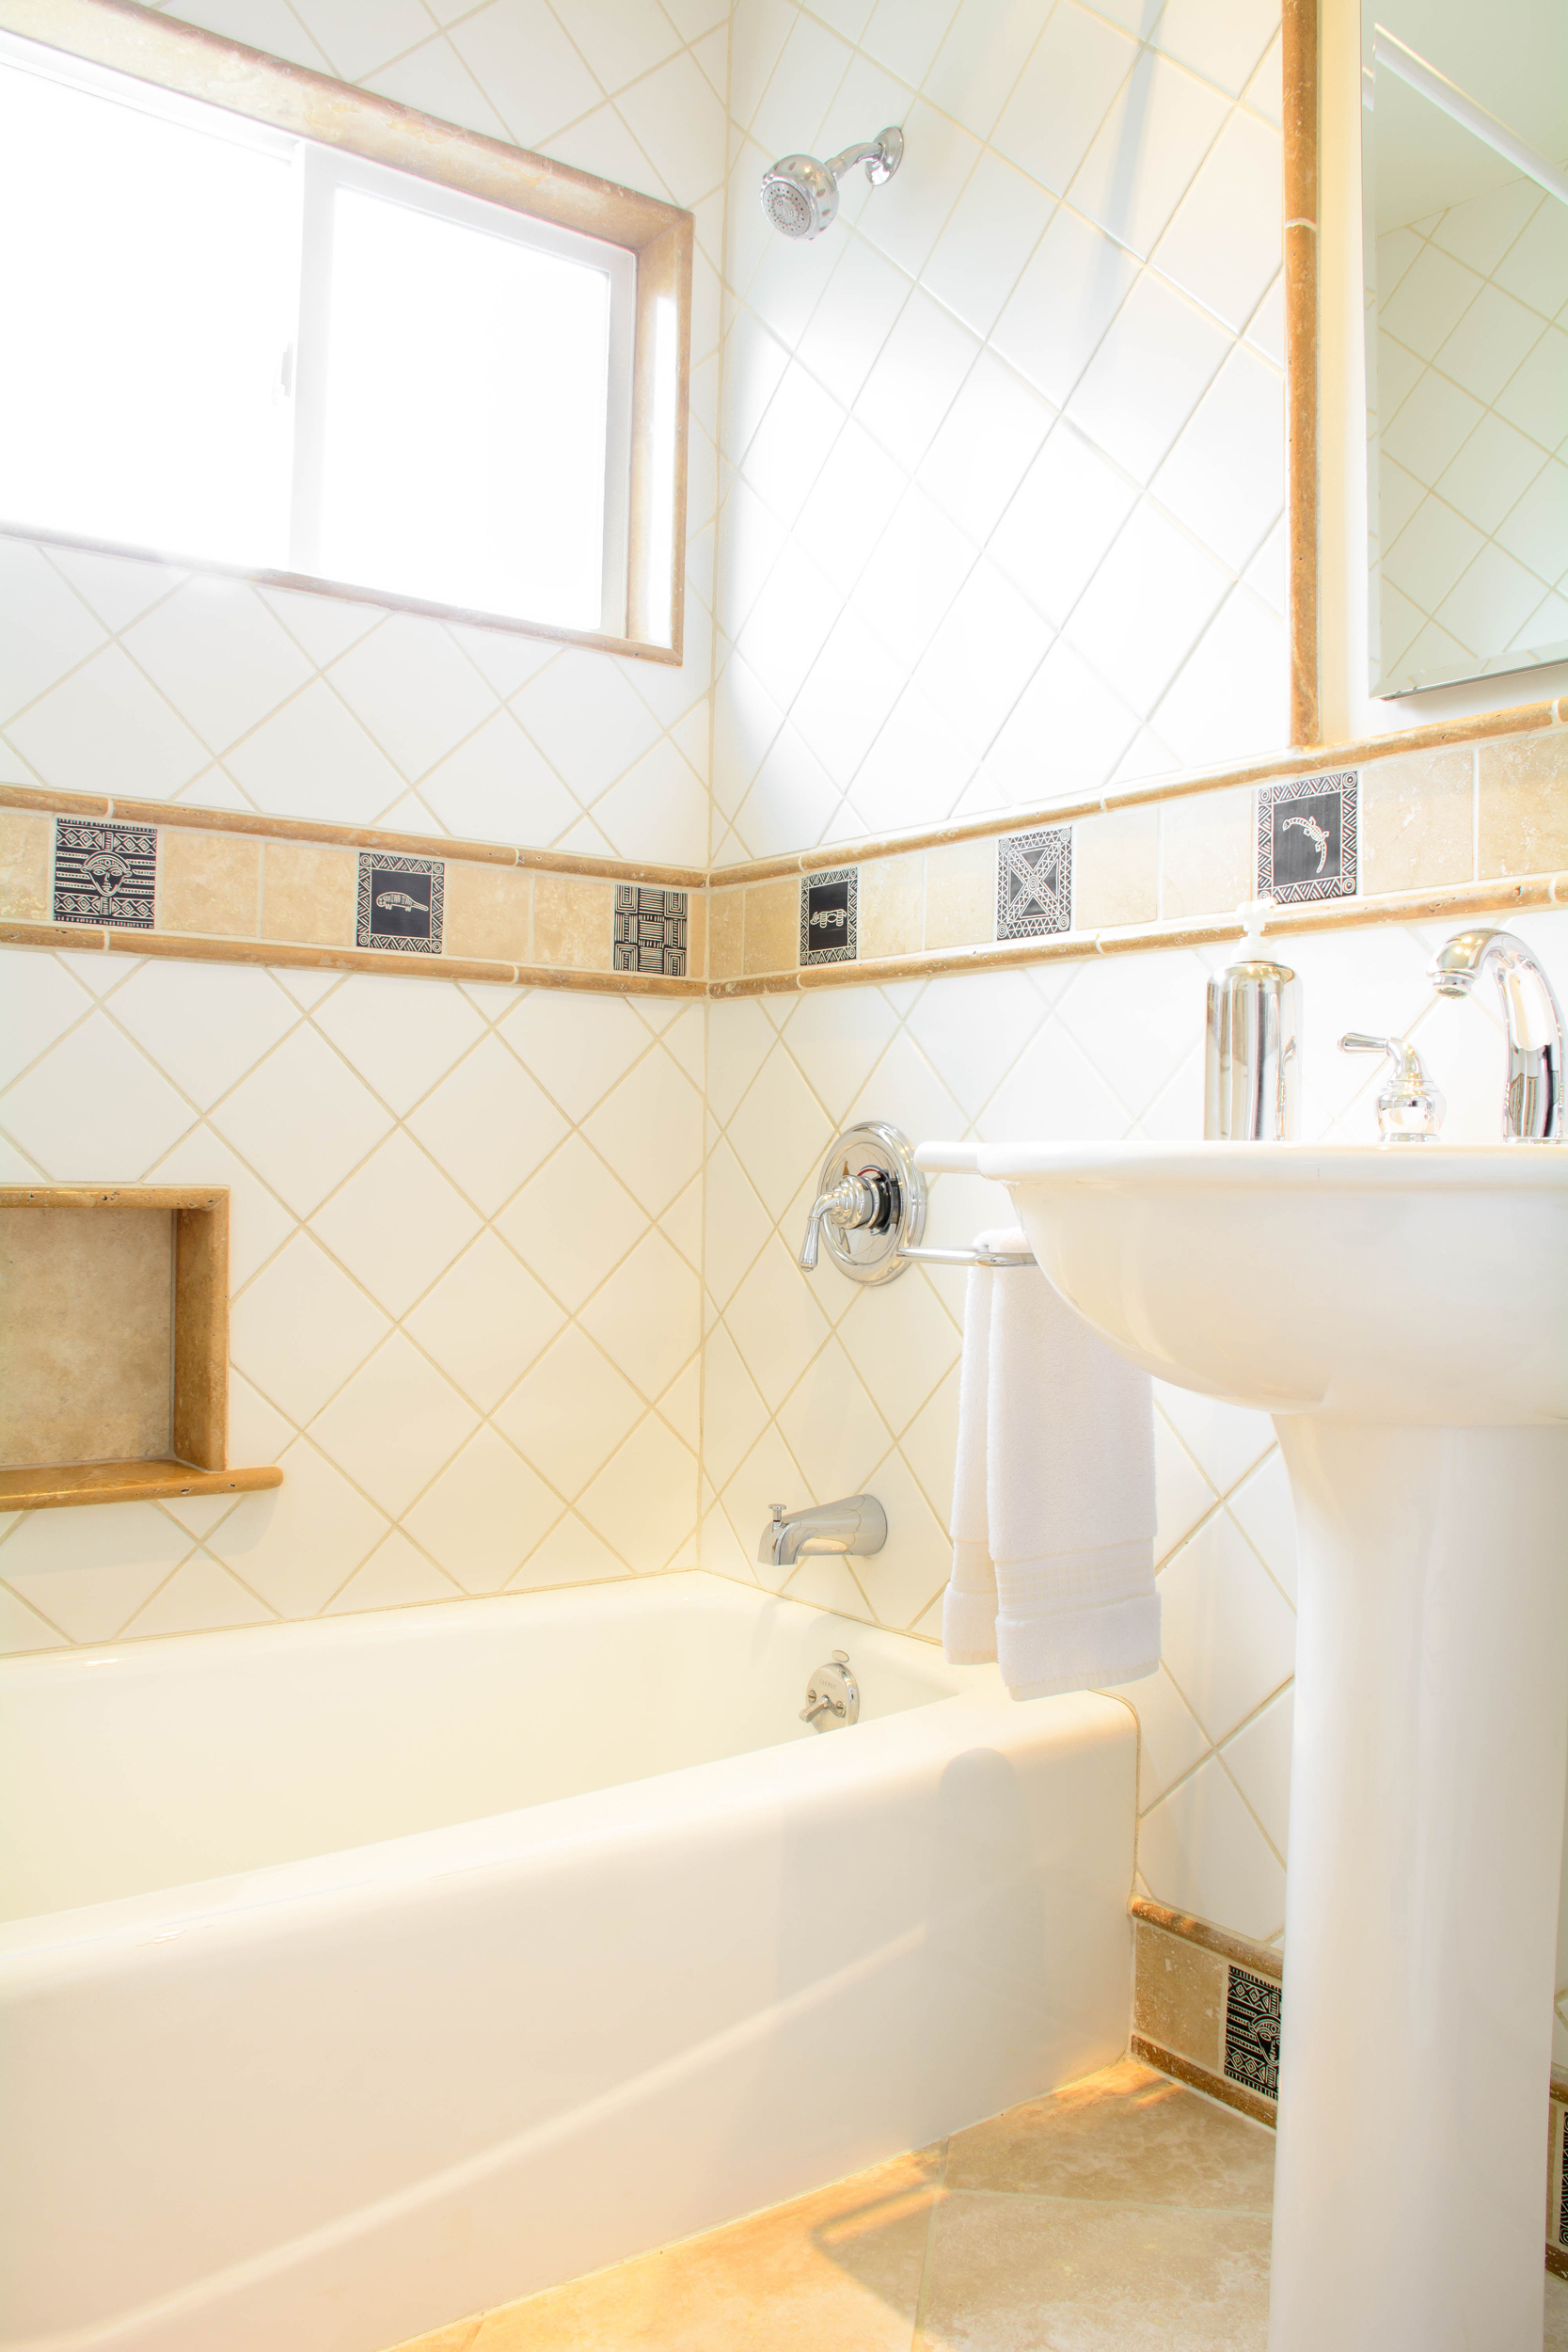 Claremont bathroom remodel: pedestal sink